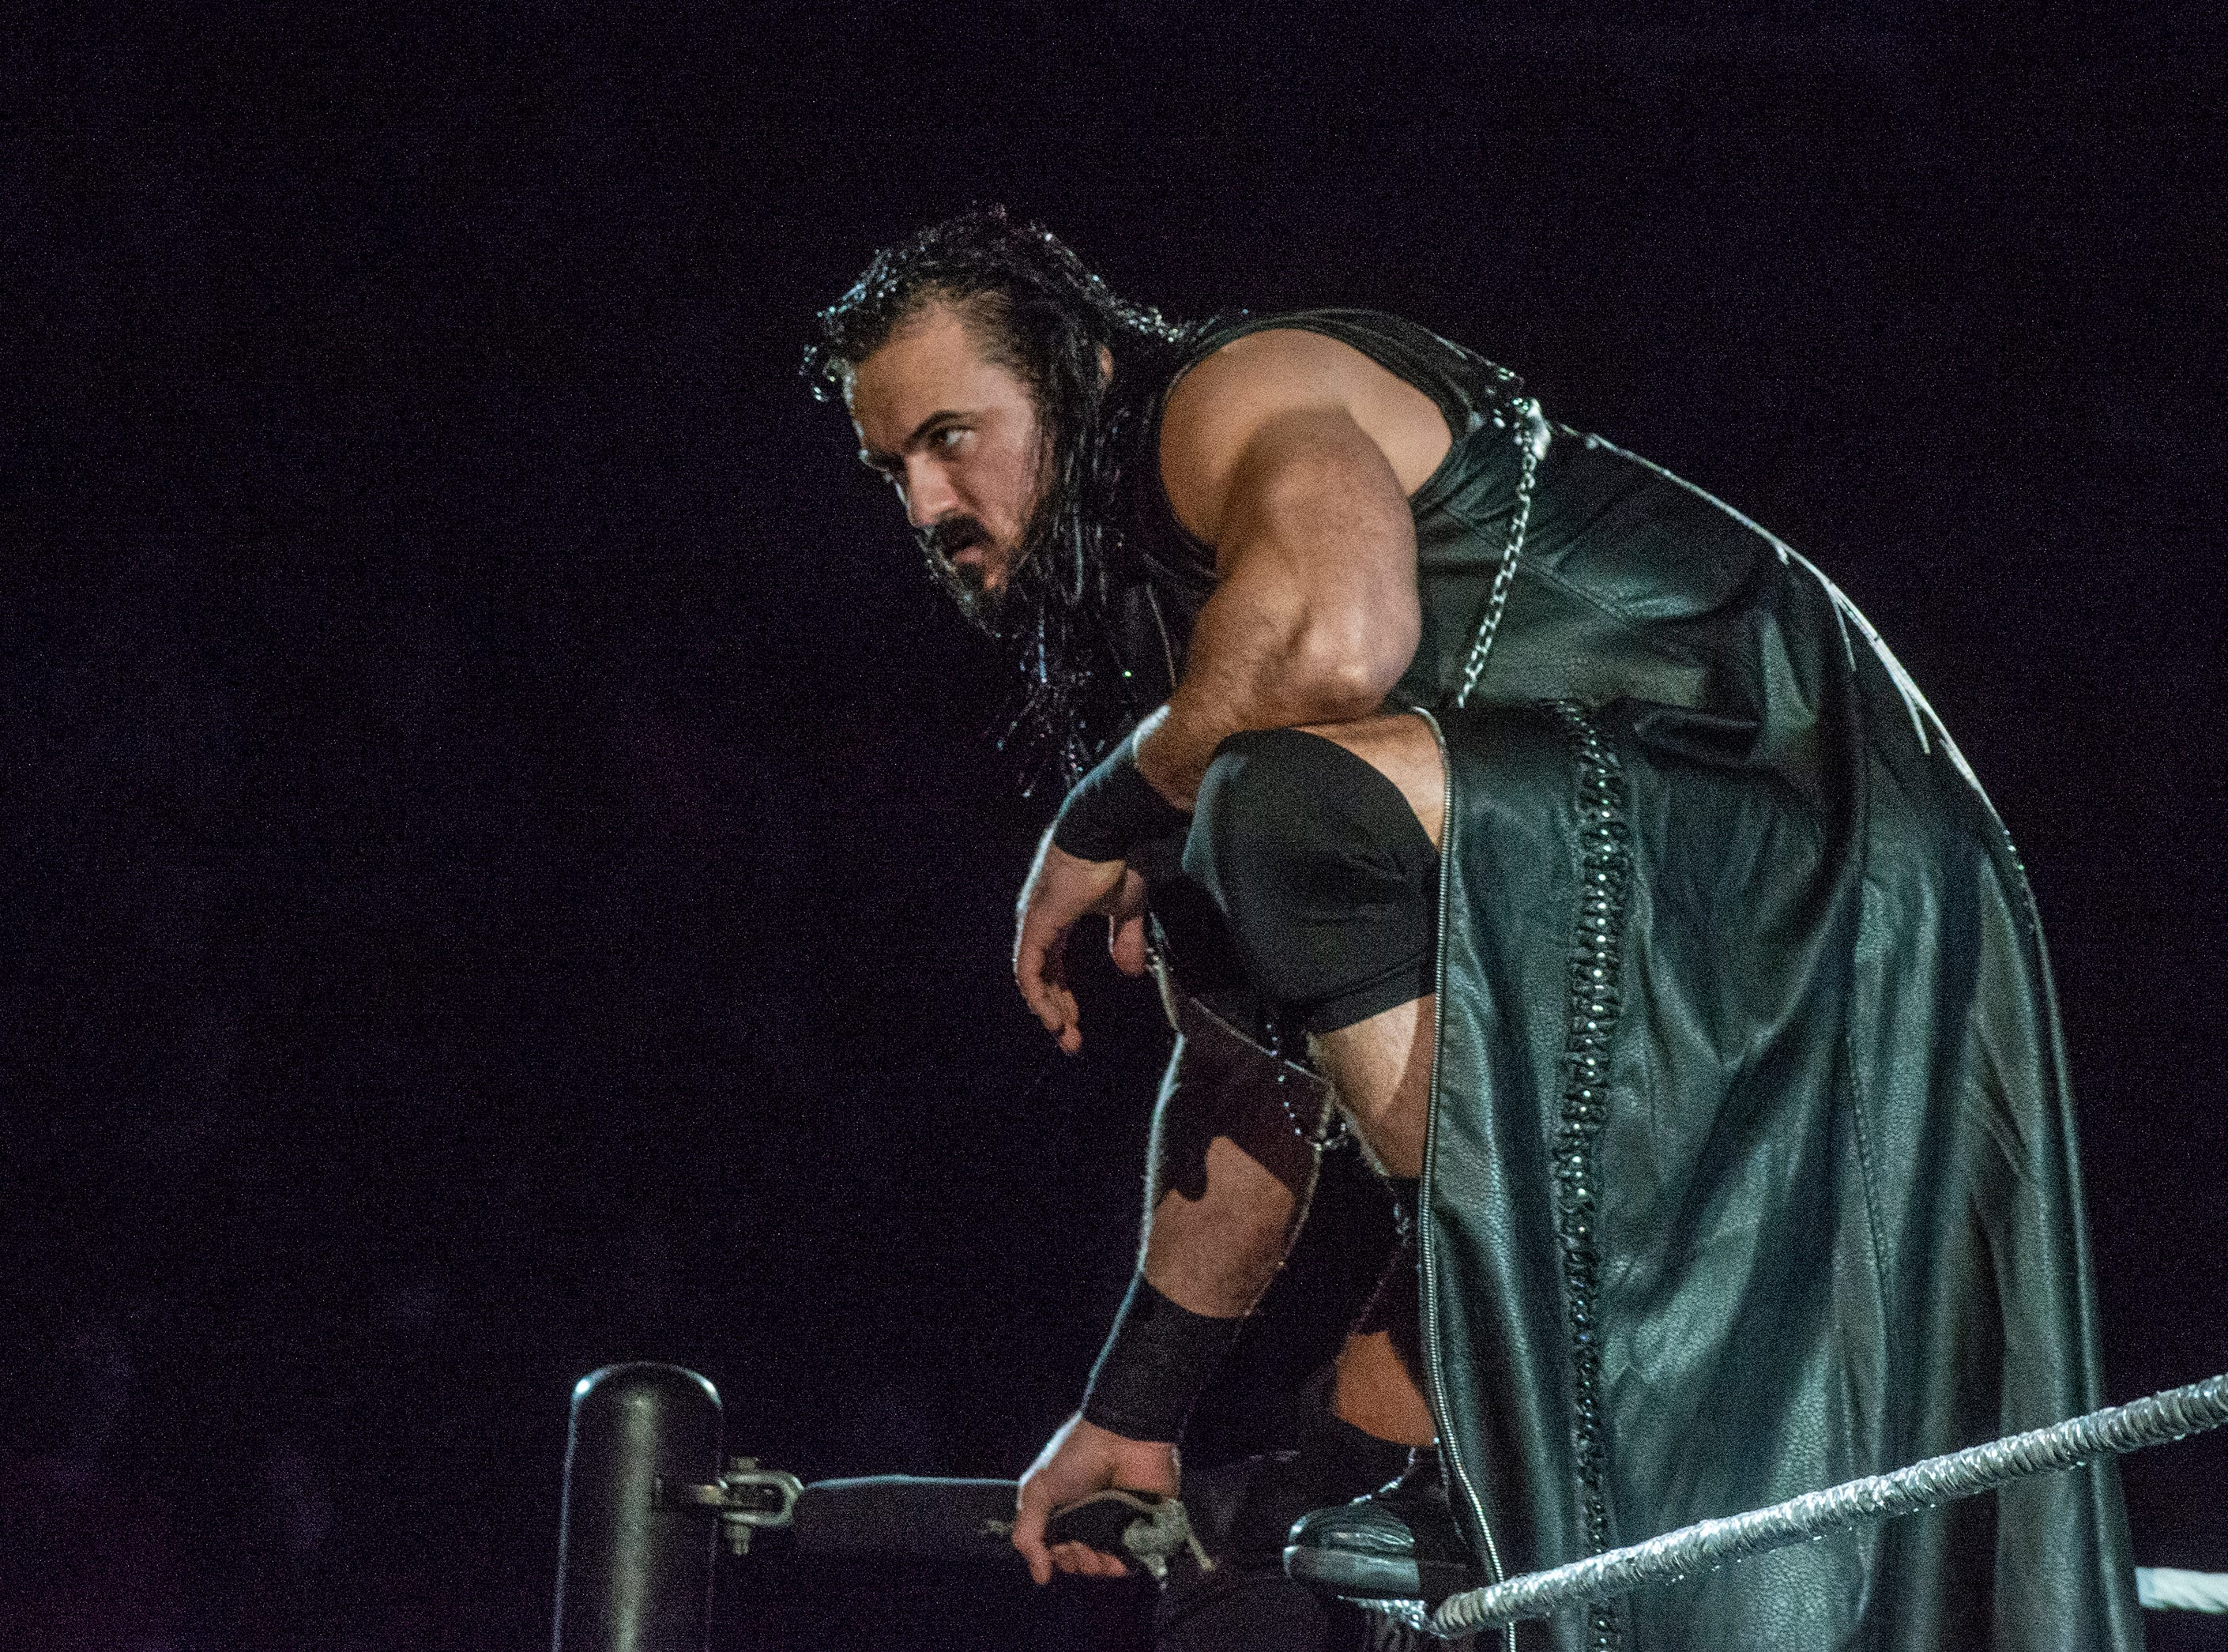 Drew McIntyre peers out at the crowd from the top rope.  WWE Live Road to Wrestlemania came to Garrett Coliseum in Montgomery on Sunday, Feb. 24, 2019.